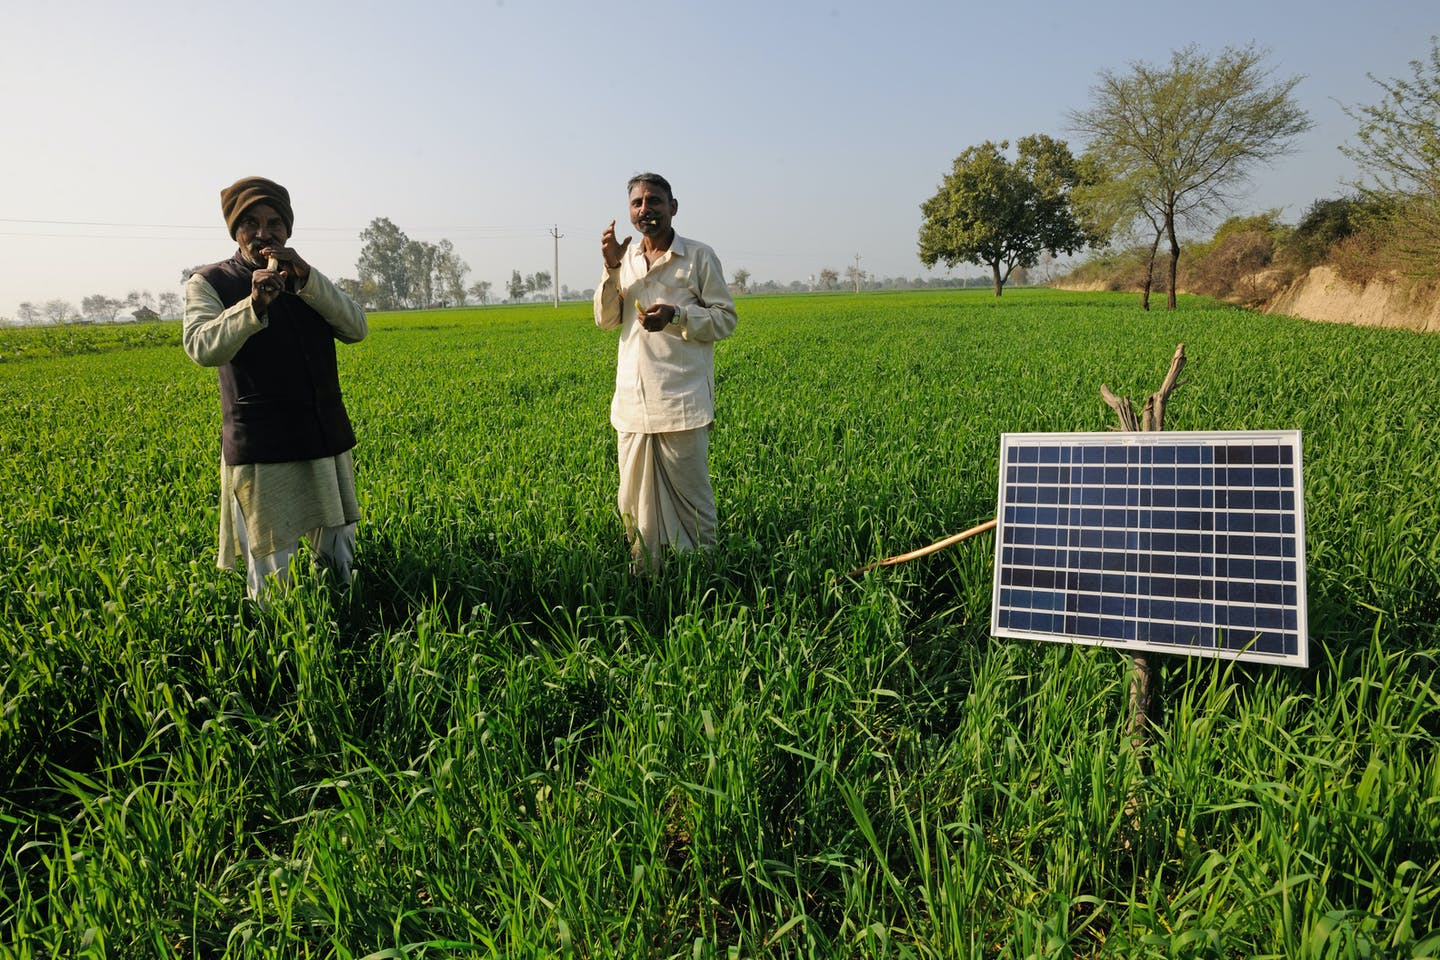 Solar panels in the fields in India